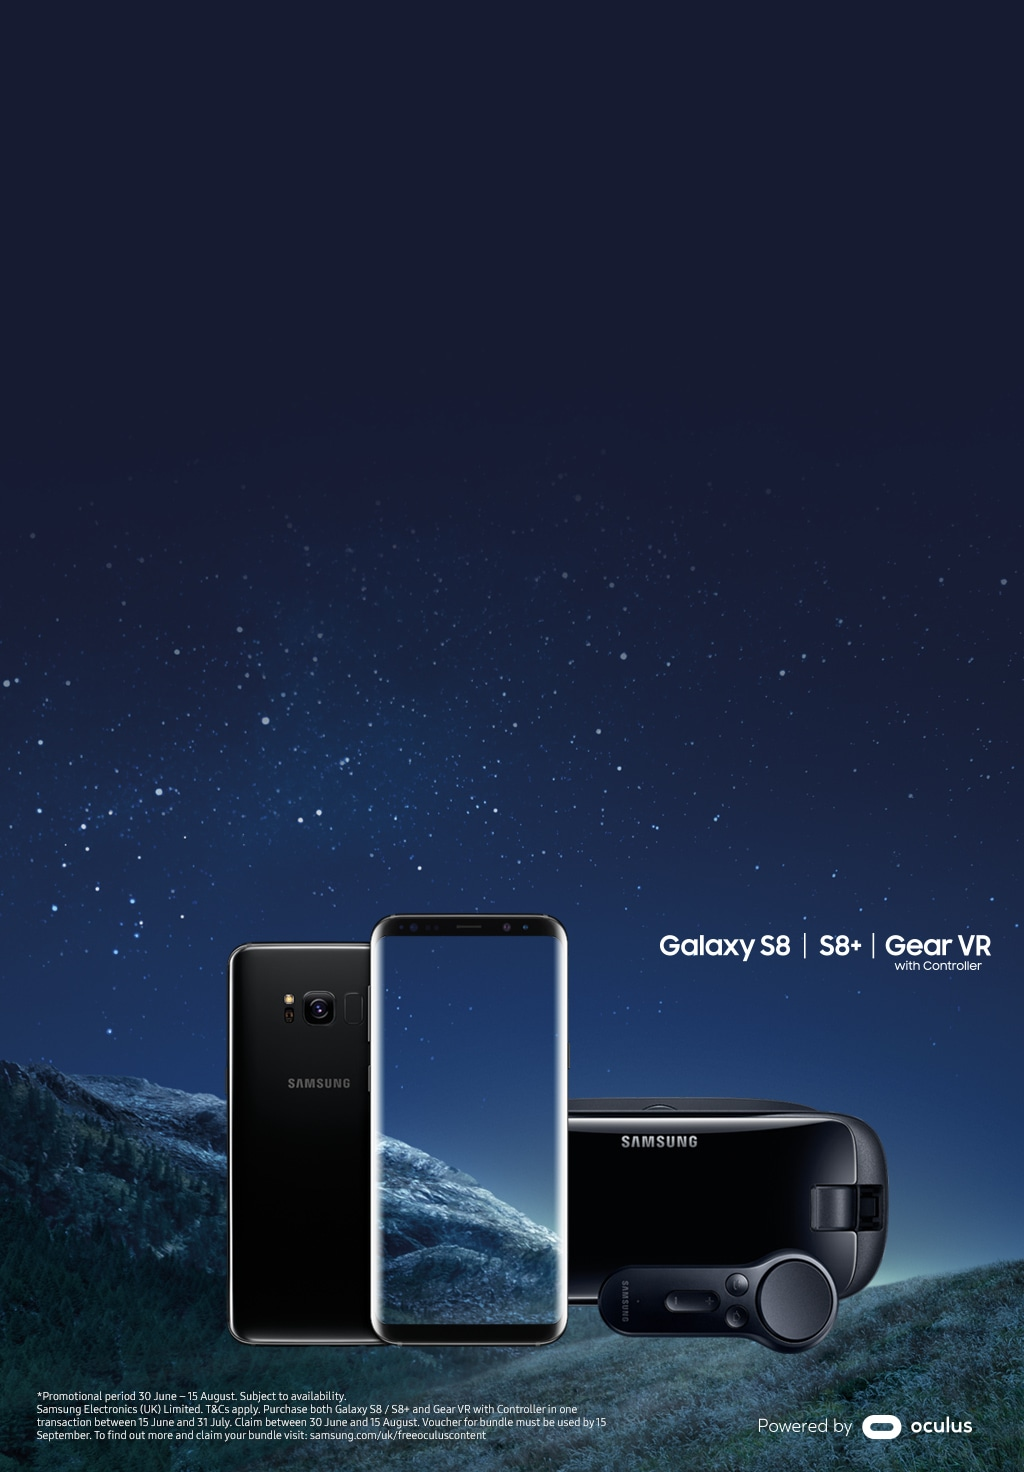 f15e8ca5e2d Claim an Oculus bundle when you buy a Galaxy S8 S8+ and Gear VR